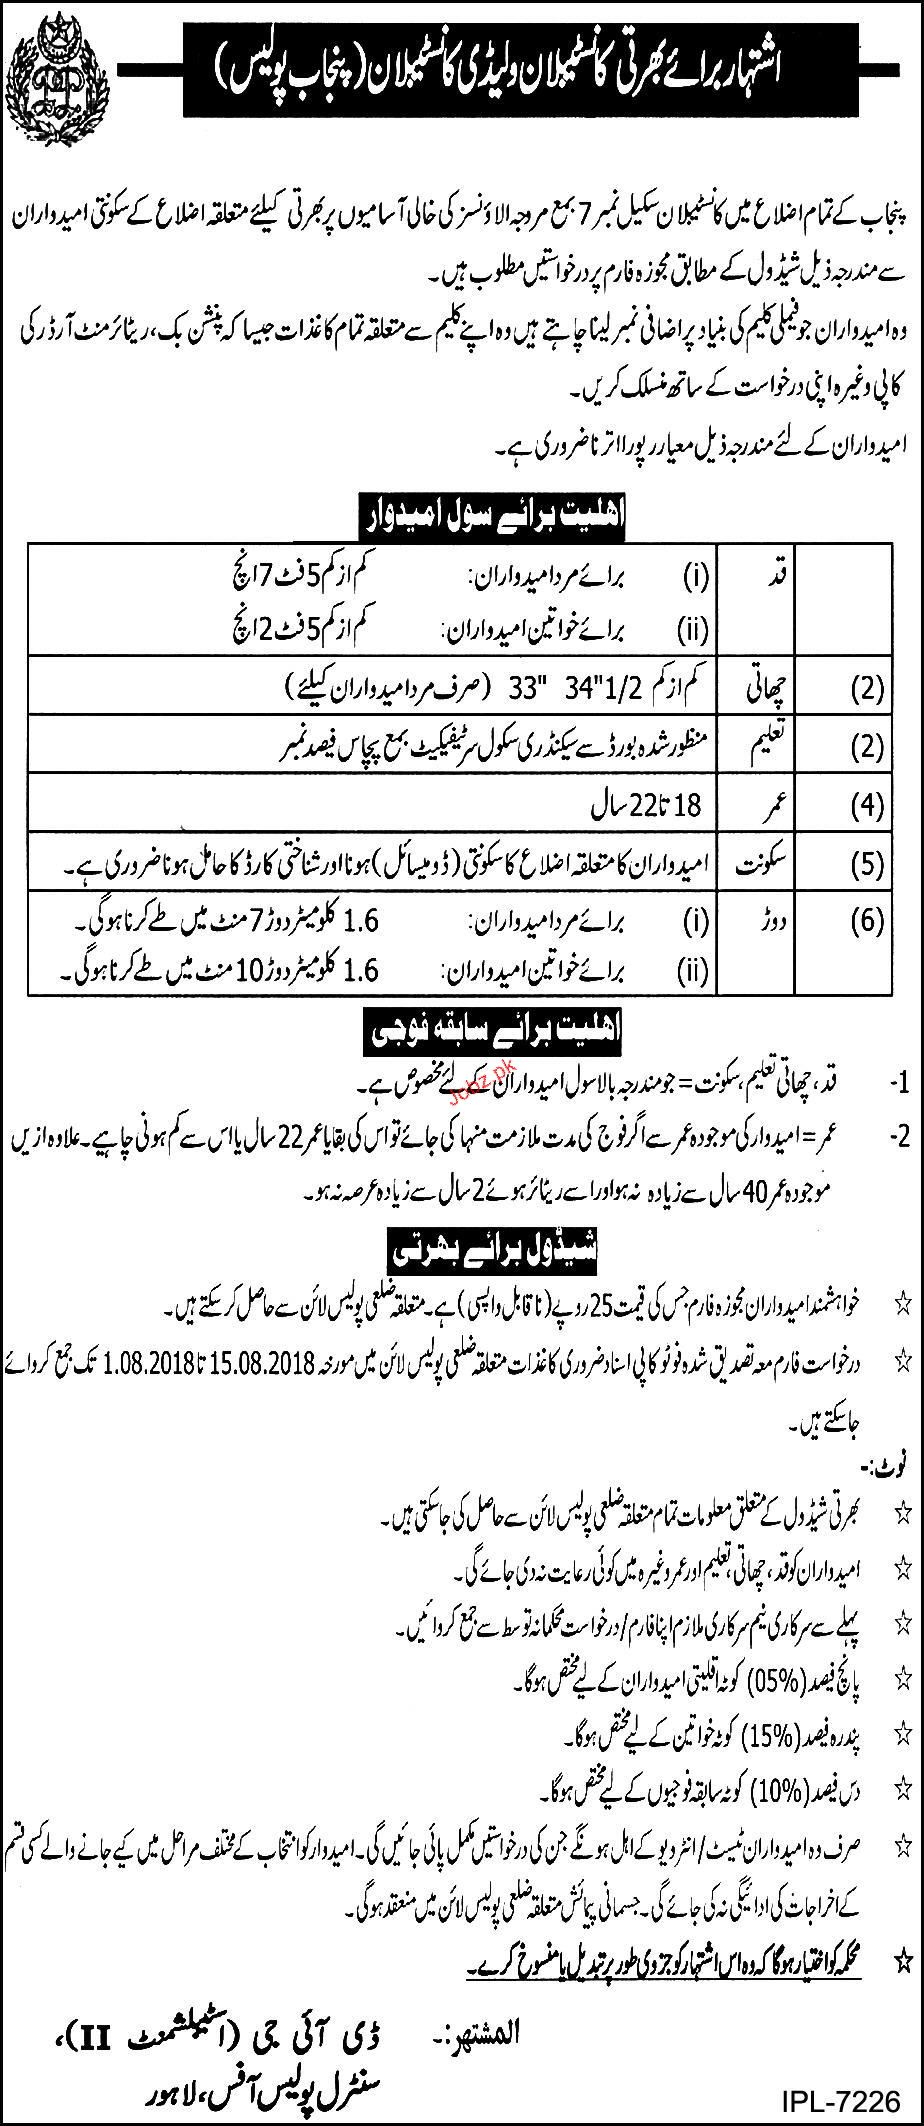 Recruitment of Police Constables in Punjab Police